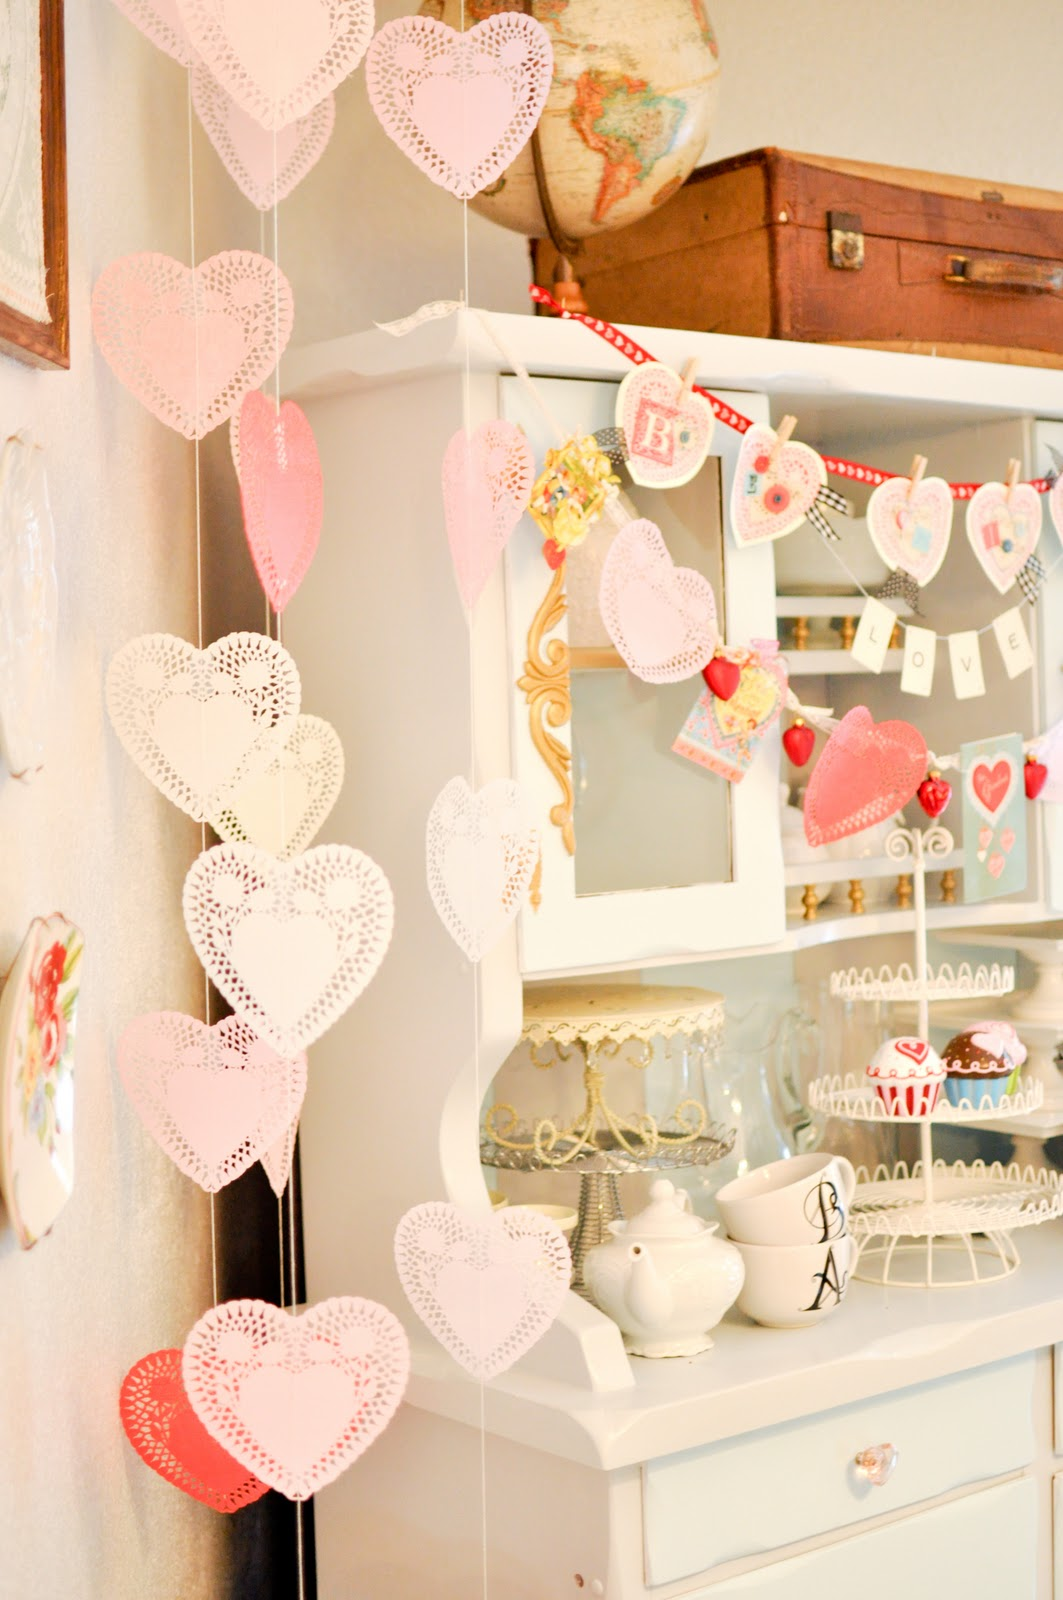 20 valentine 39 s day decorations ideas for your home for Home decorations for valentine s day